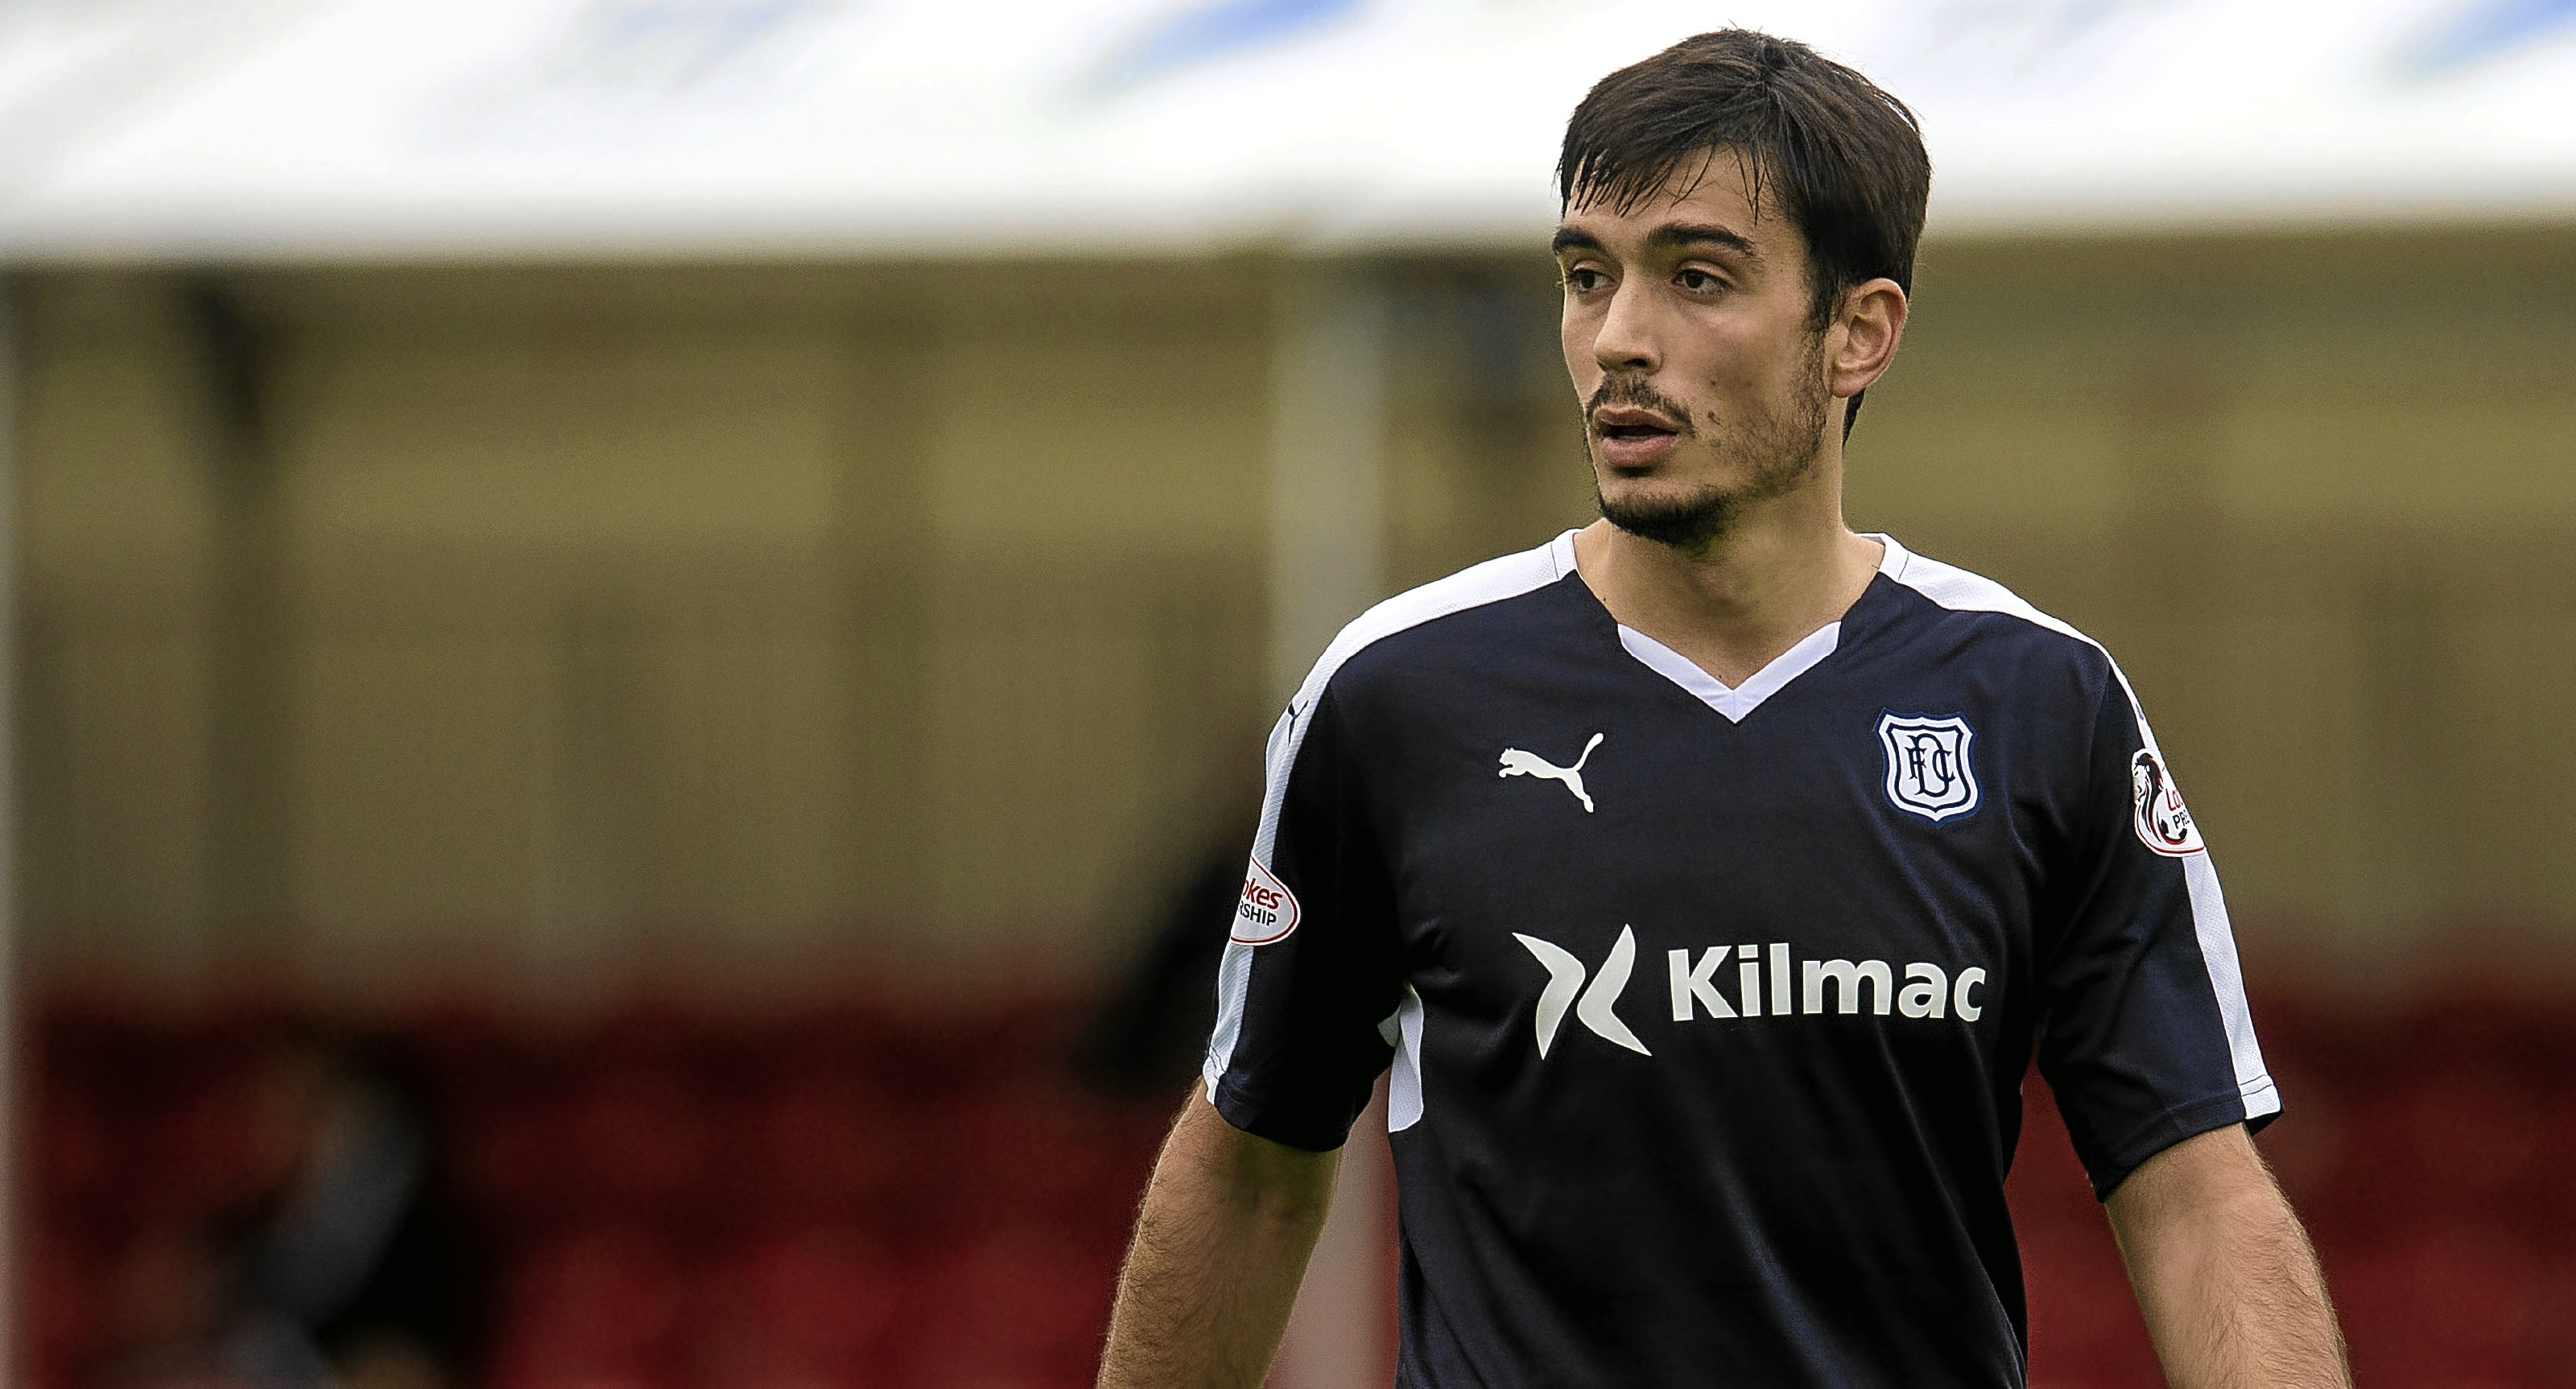 Despite Spain being Julen Etxabeguren's legal homeland, the Dundee defender doesn't want to see the current champions regain the European title.